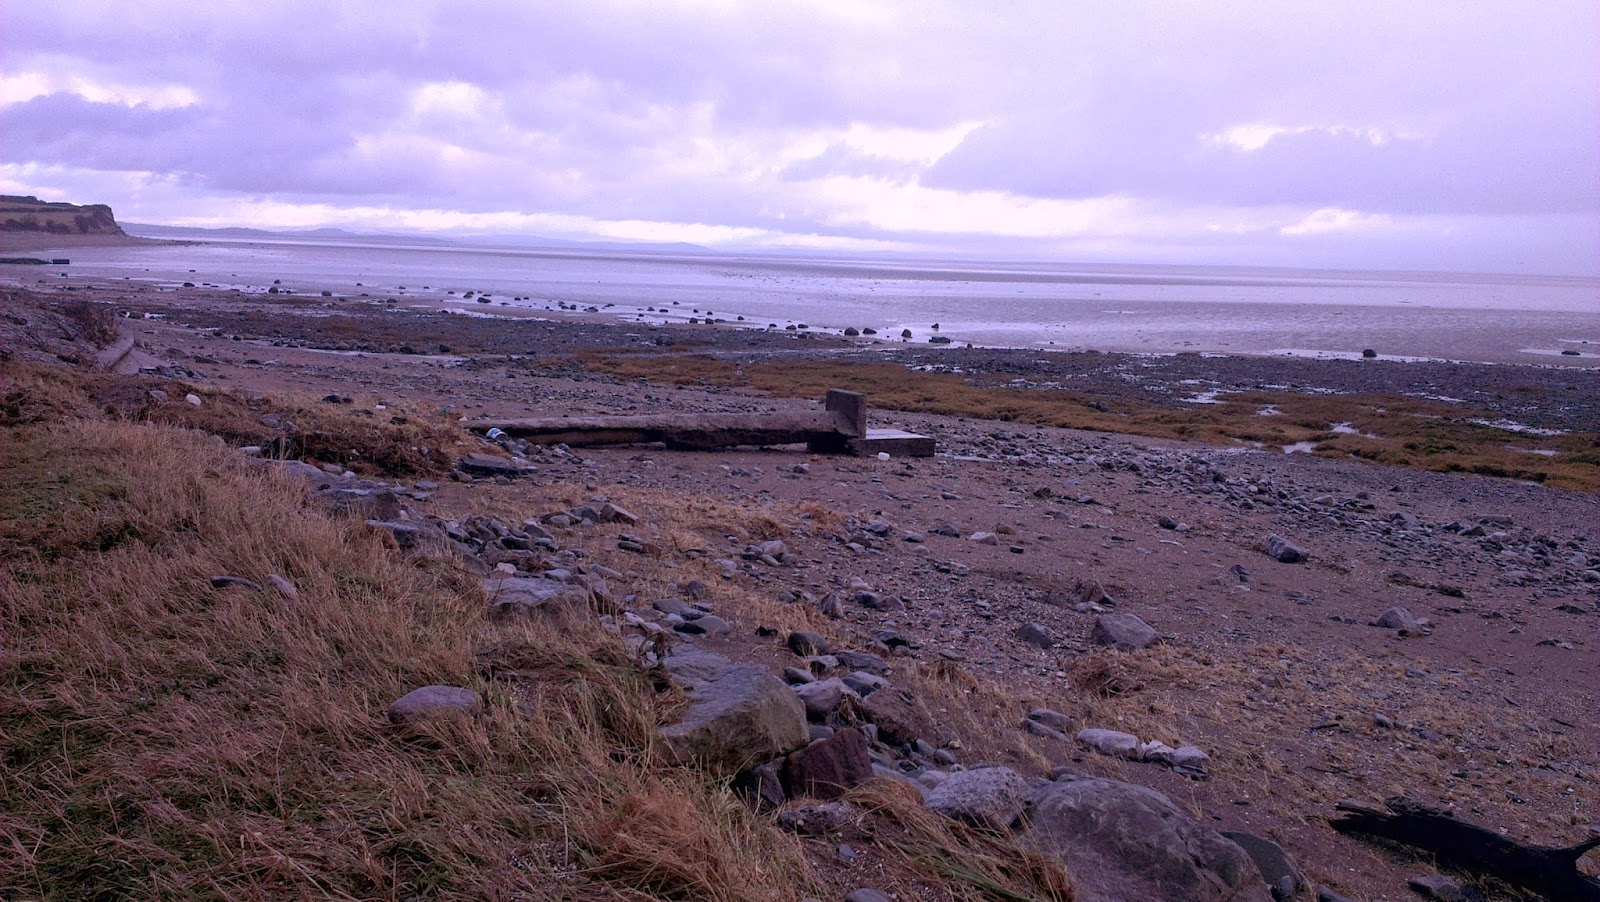 Various rocks and debris have been dumped by the tide